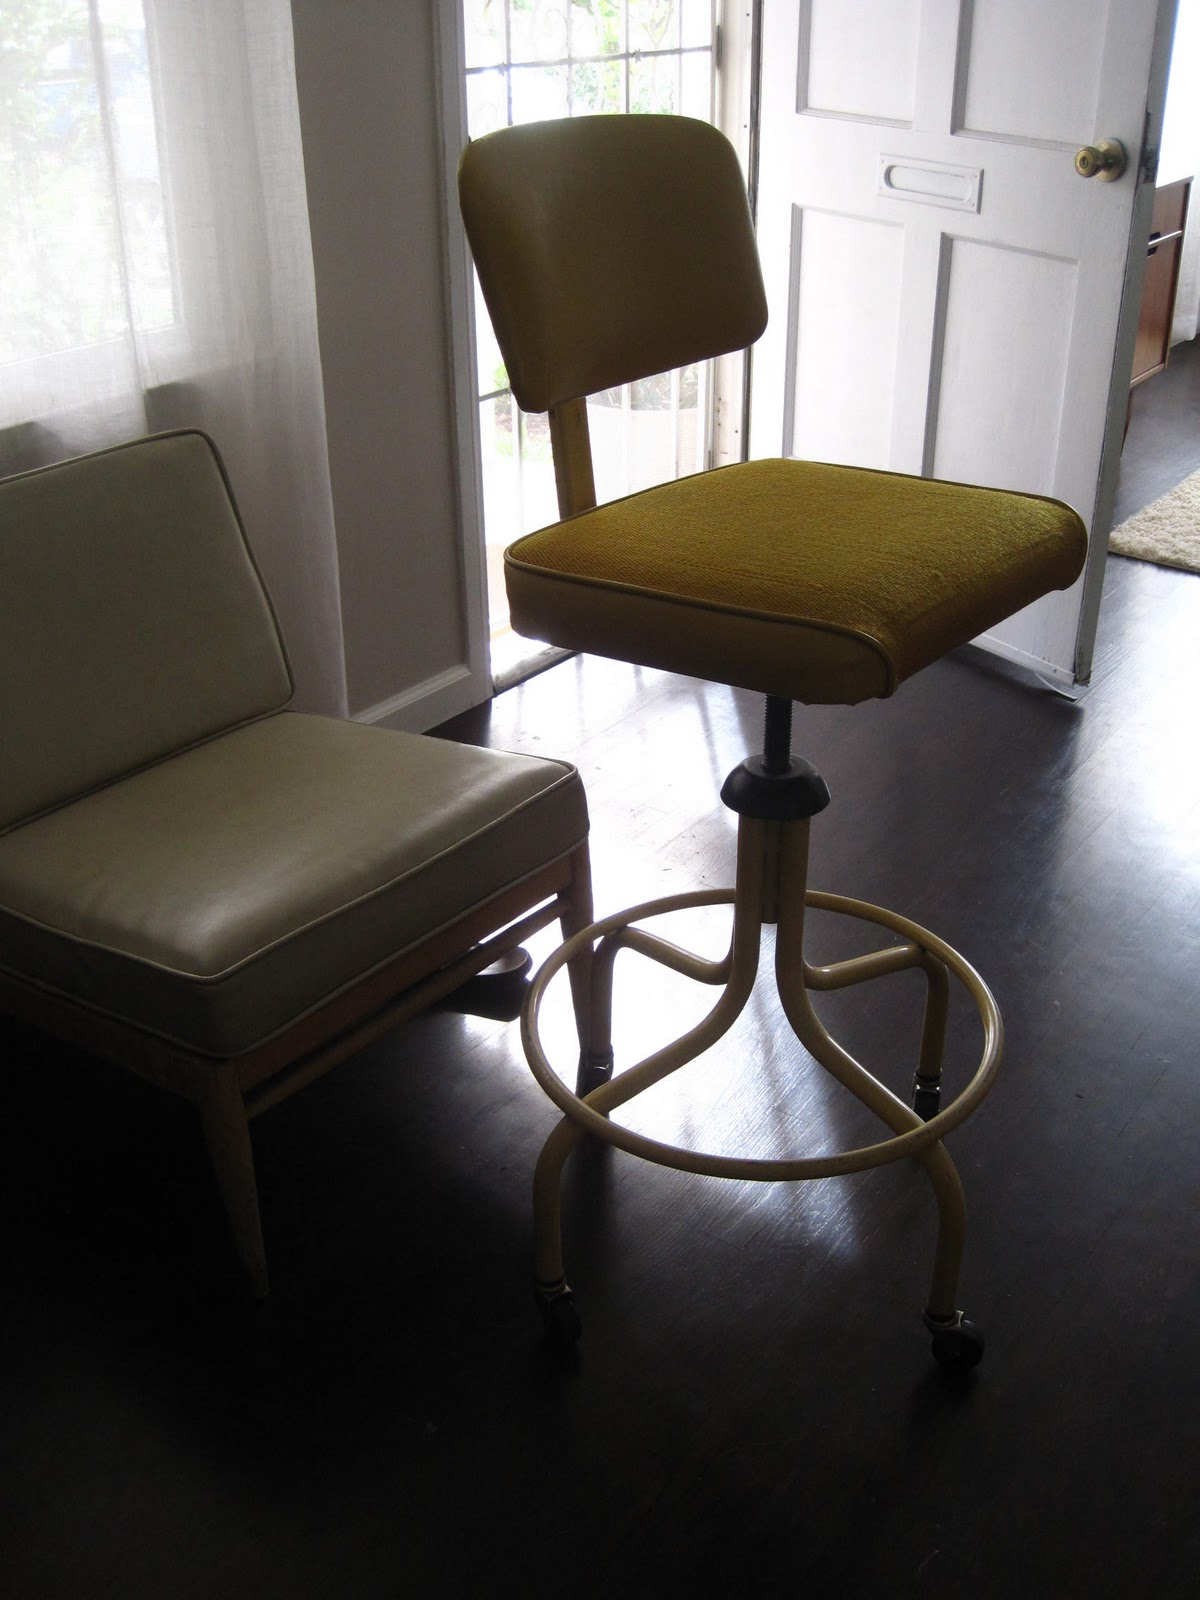 modern drafting chair conference table with chairs rhan vintage mid century blog friday finds lamps and a